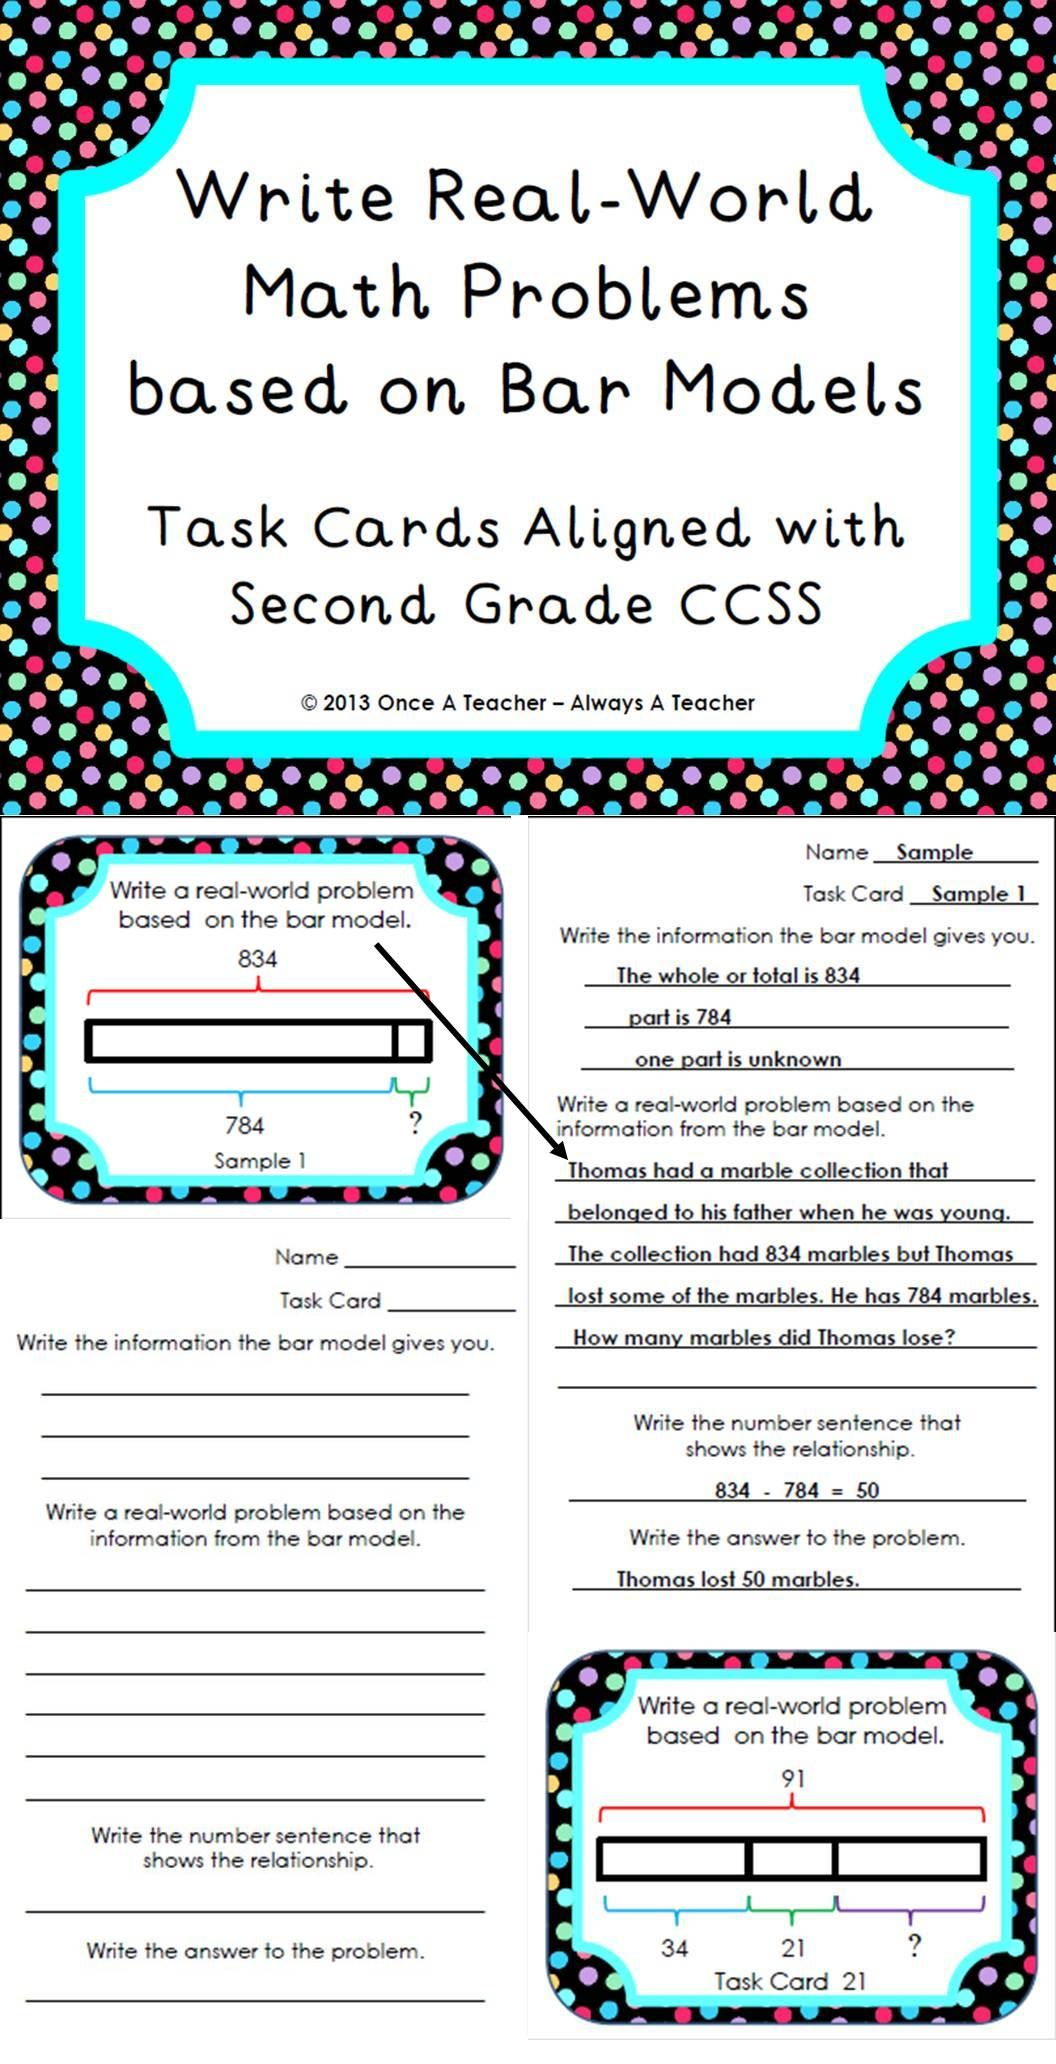 Write Real-World Math Problems based on Bar Models - Task Cards | My ...